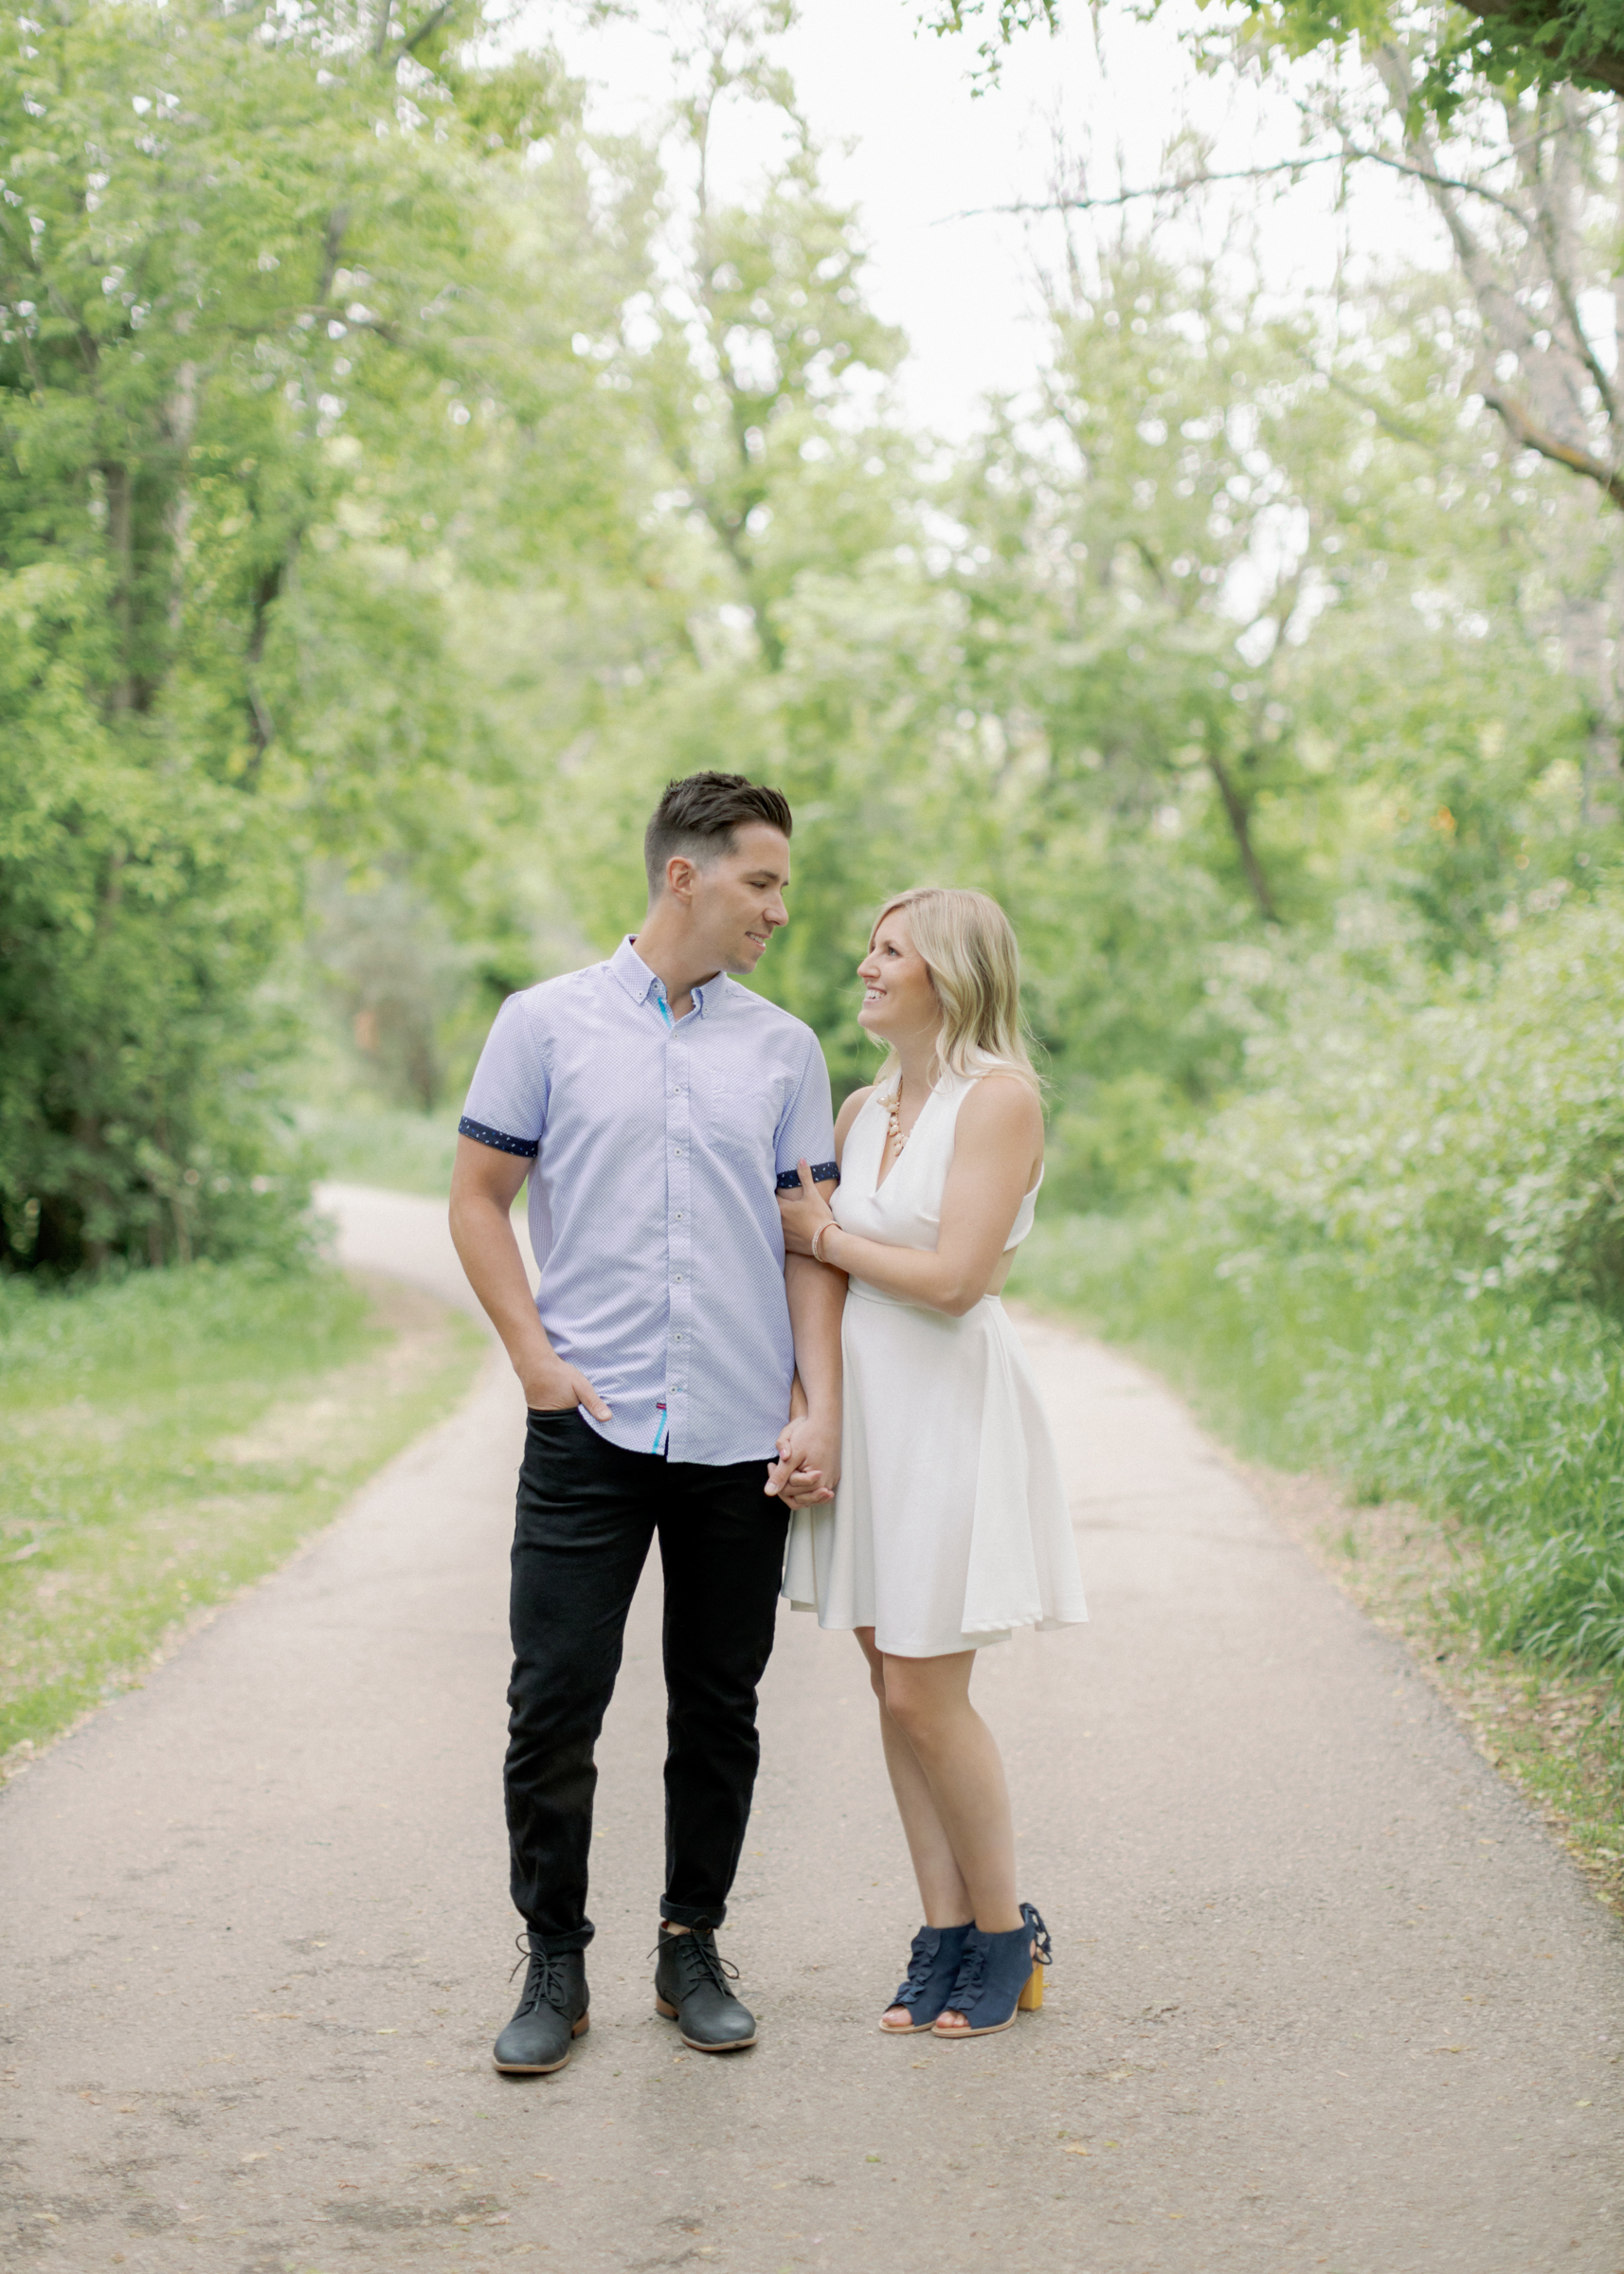 look at each other during engagement session